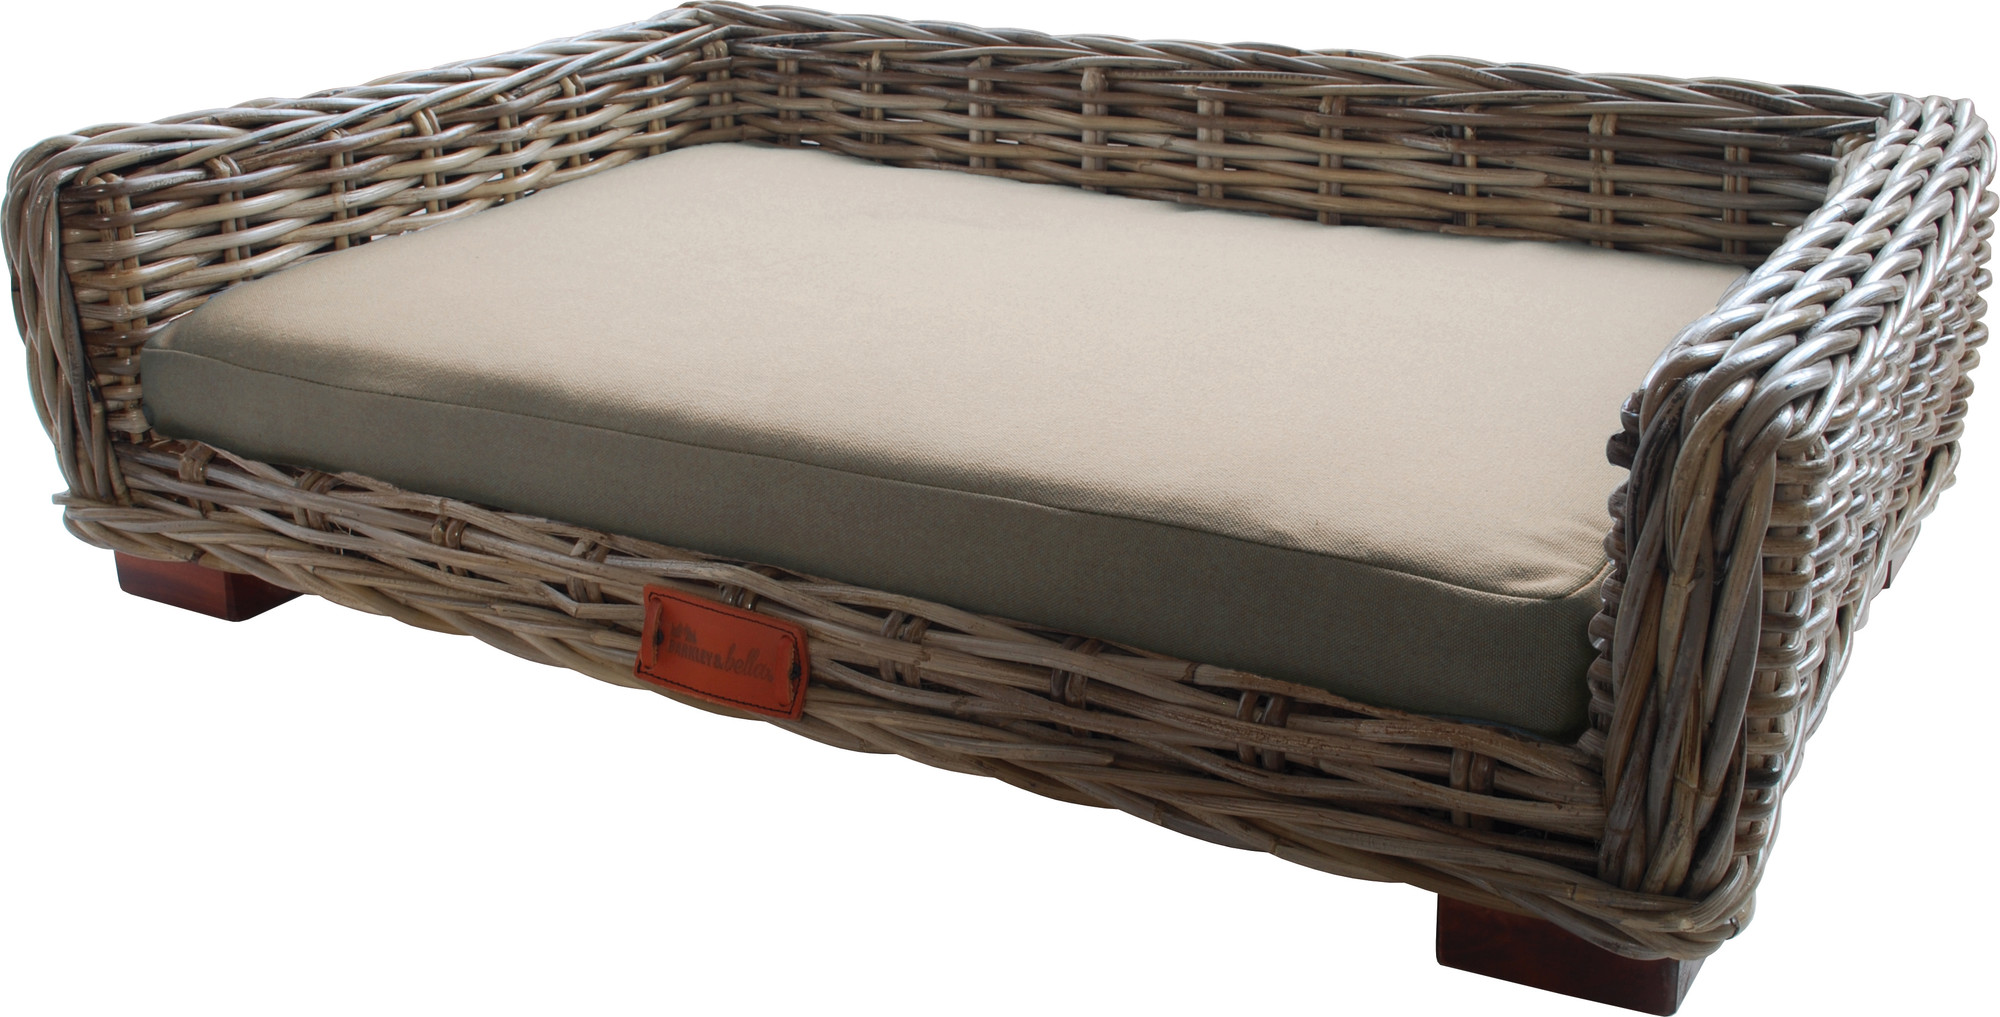 New Grey Wicker Dog Lounge Barkley And Bella Pet Beds